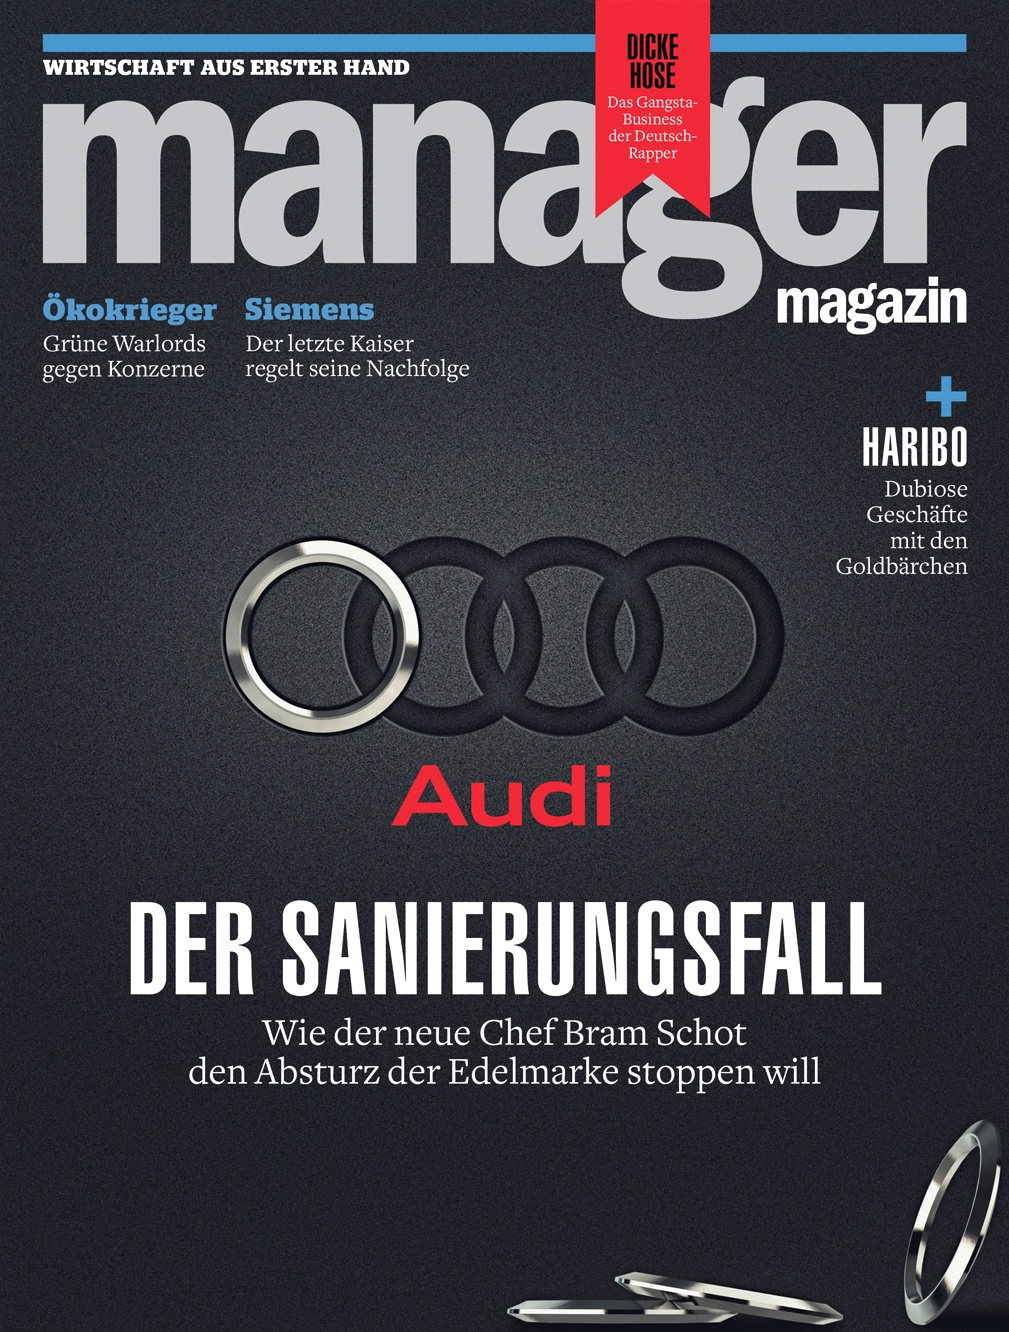 magazin-cover2019.jpg